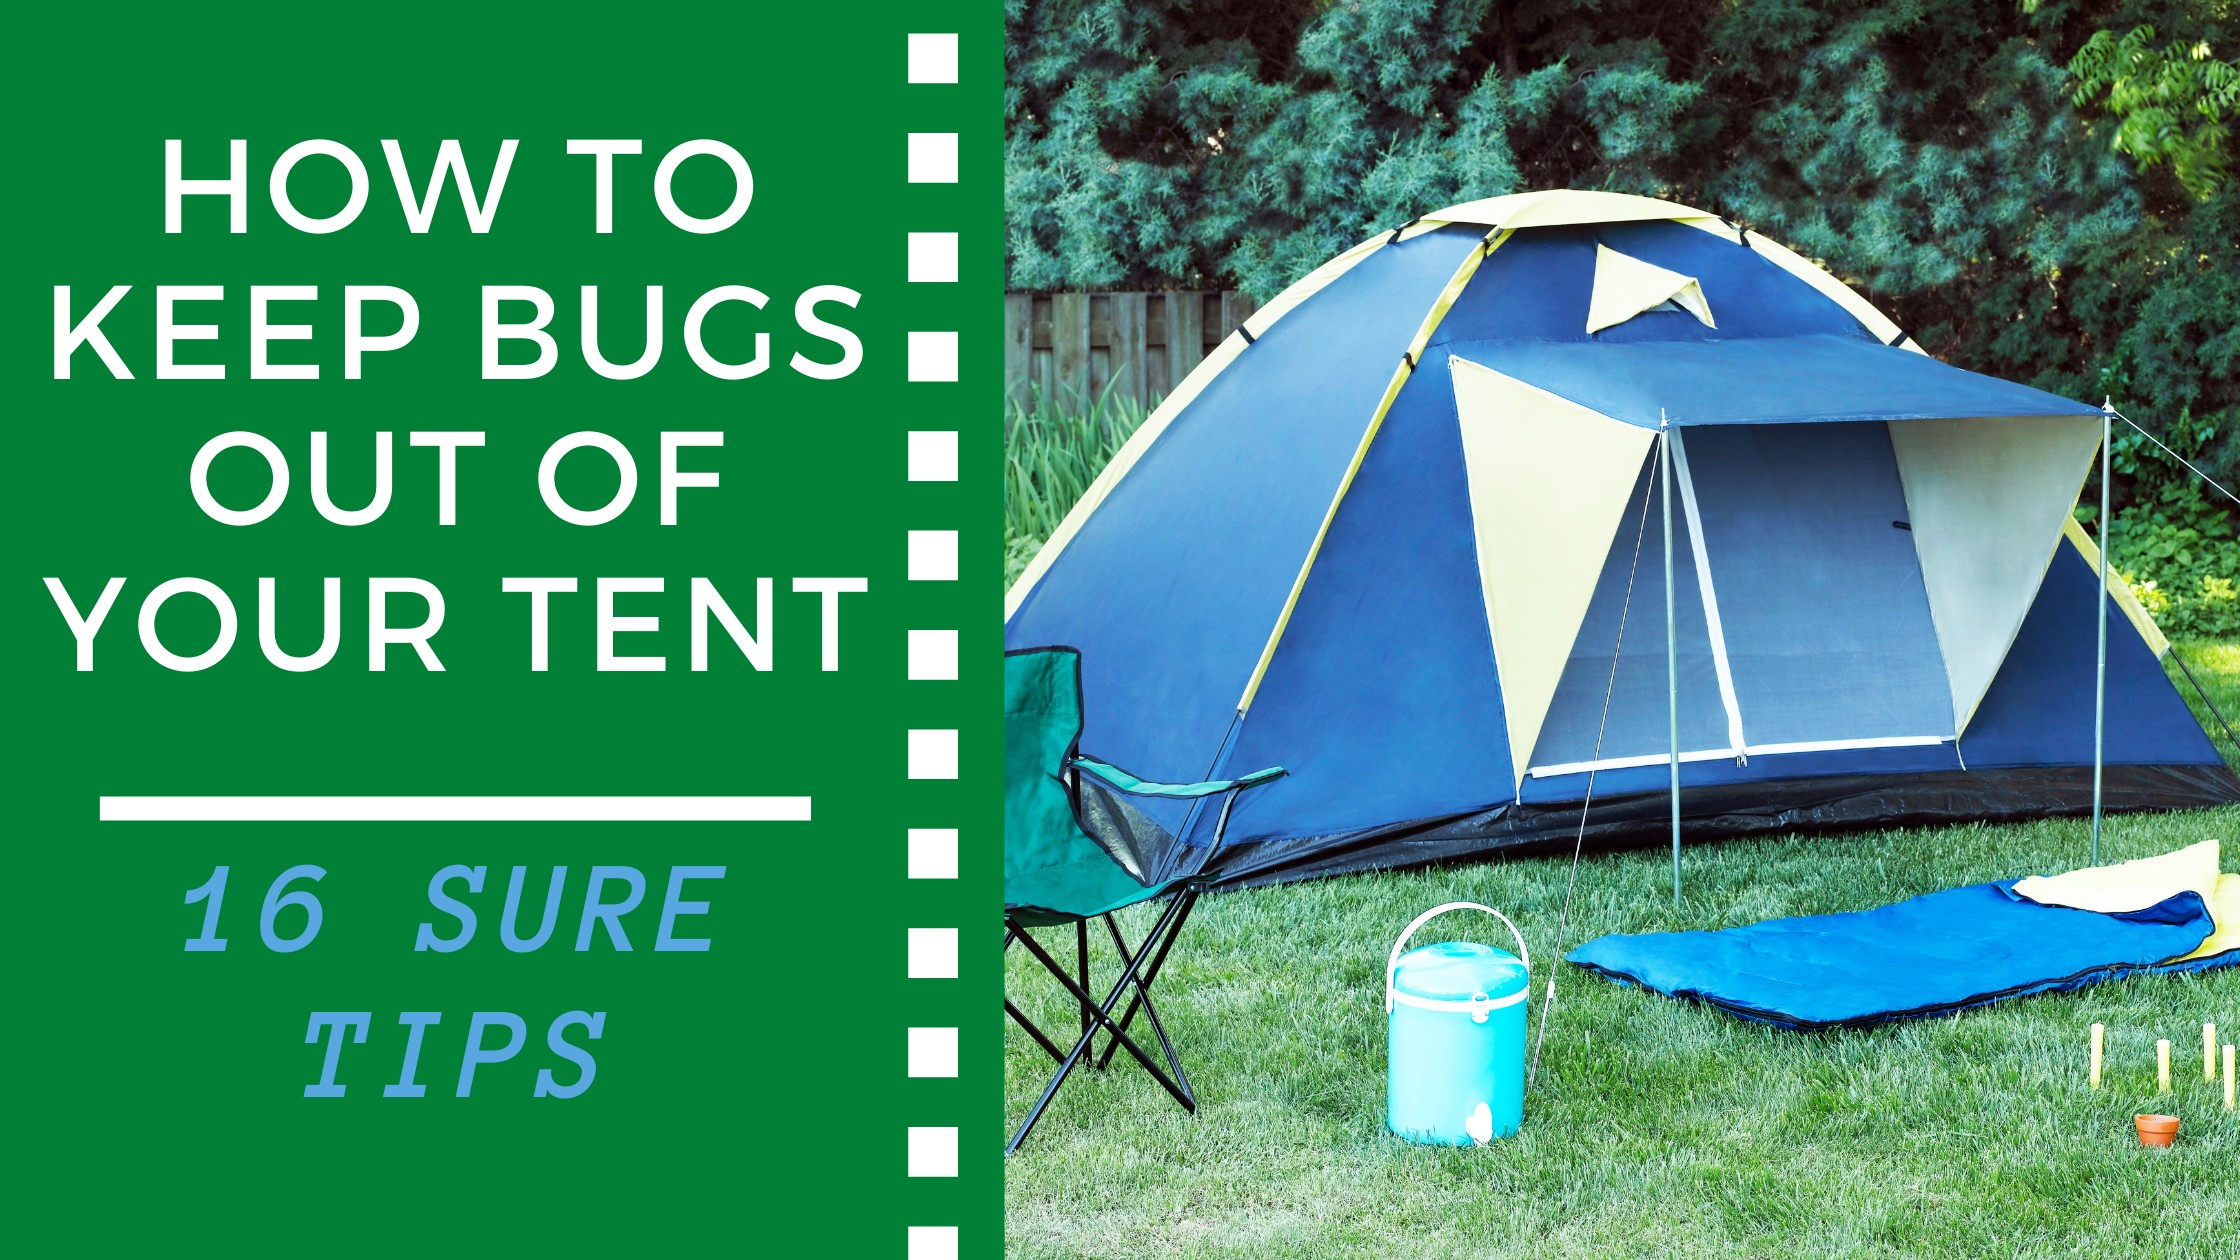 How to Keep Bugs Out of Your Tent